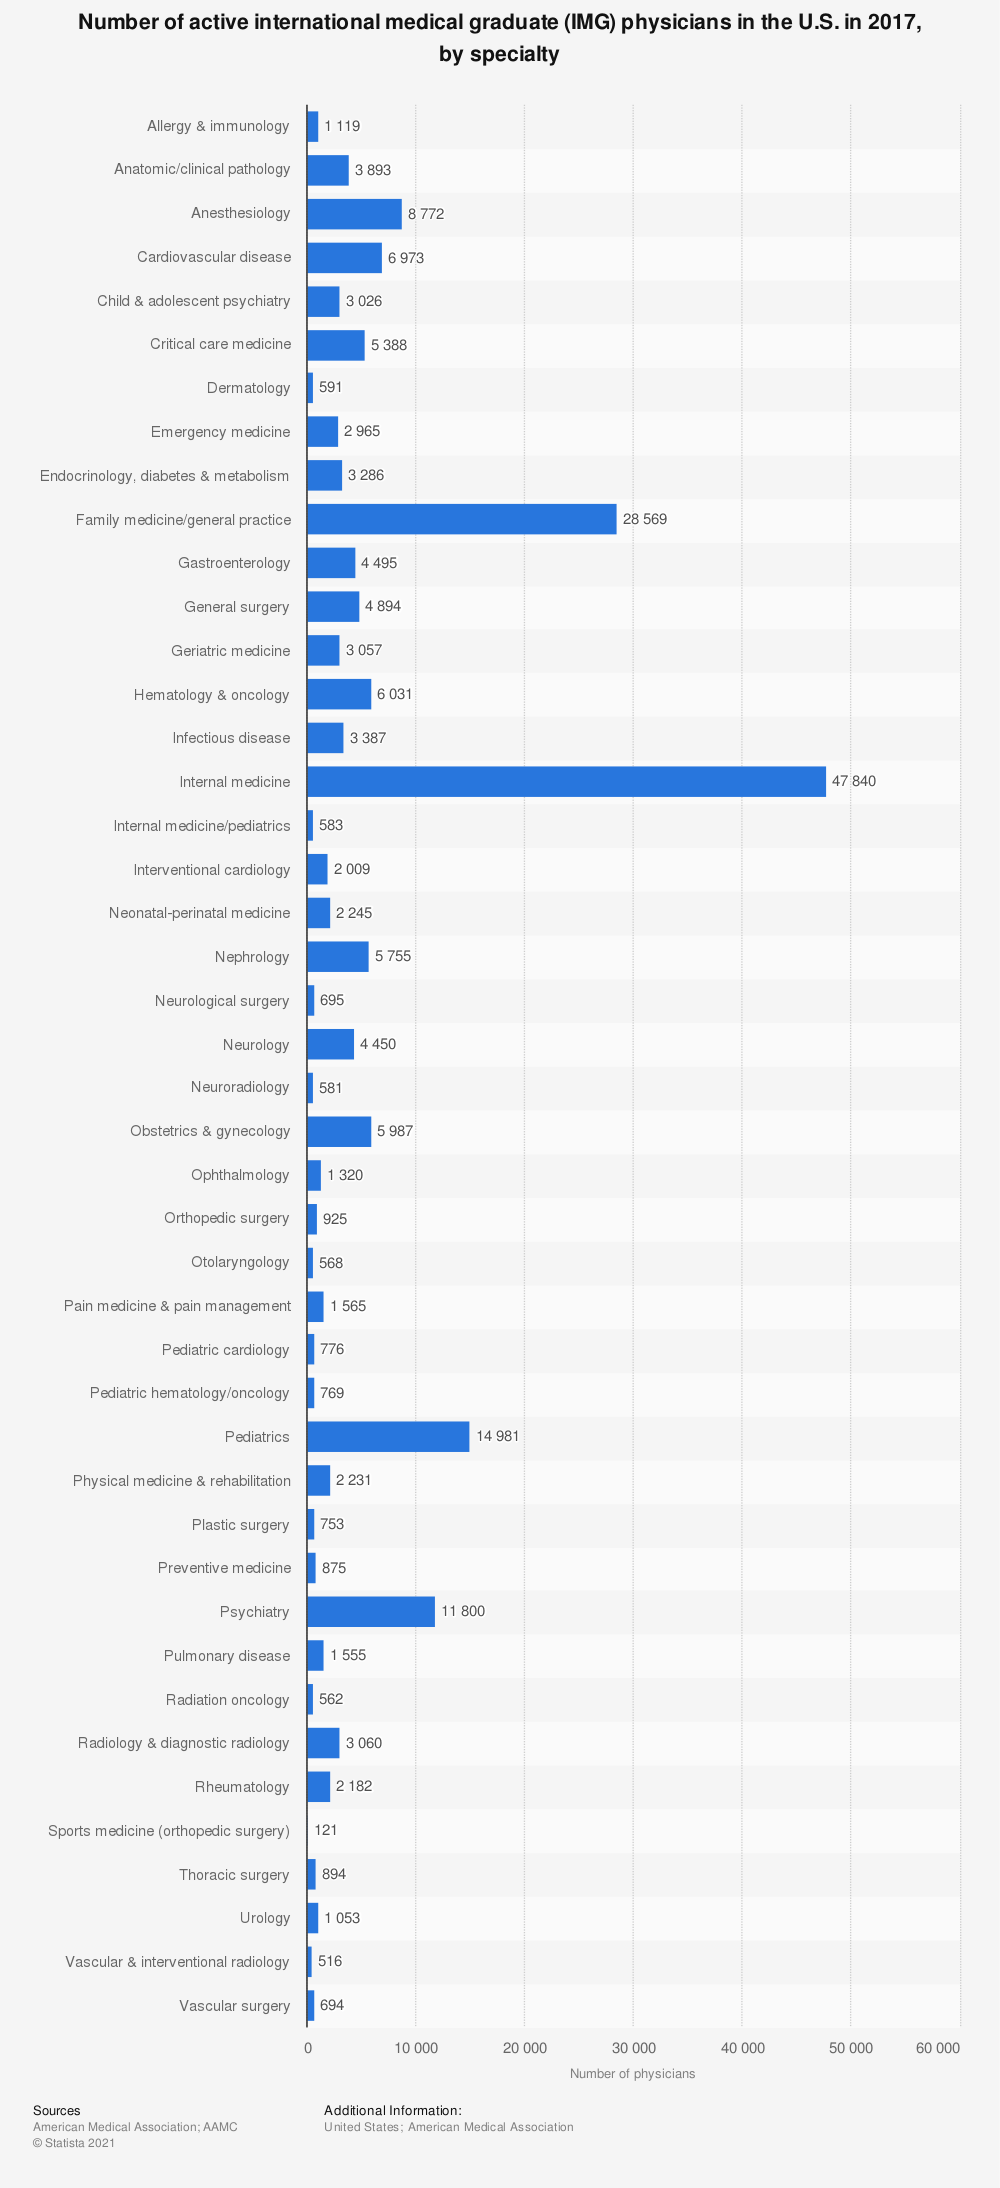 Statistic: Number of active international medical graduate (IMG) physicians in the U.S. in 2017, by specialty  | Statista